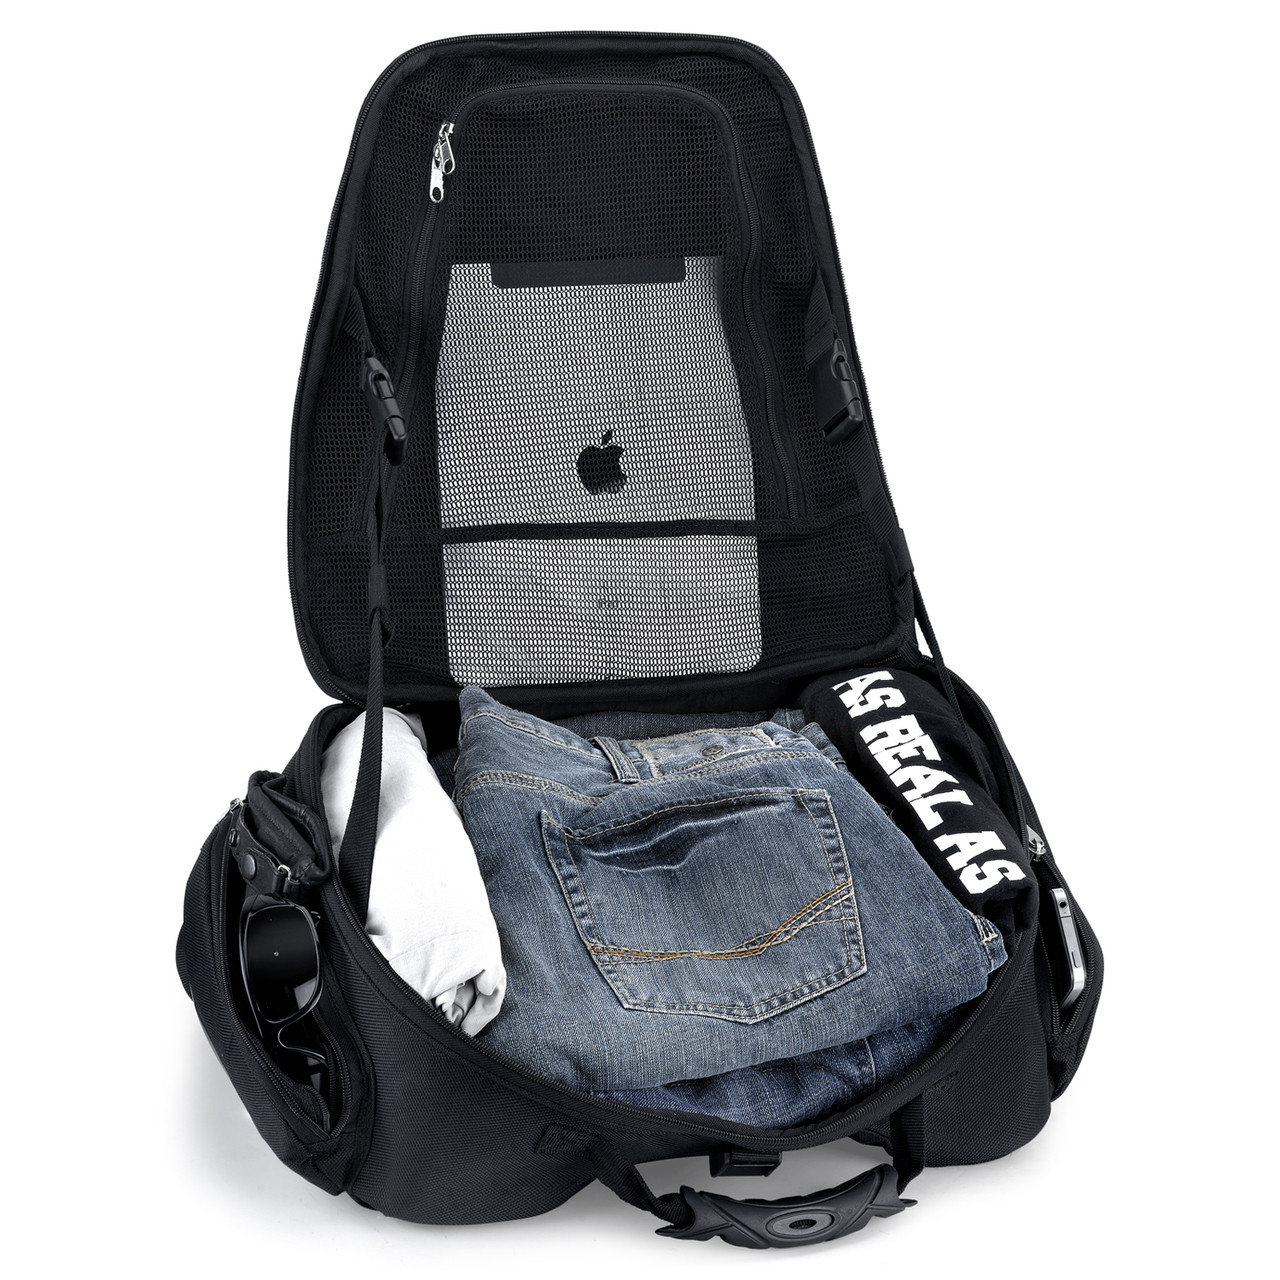 Motorcycle Tunnel Seat Luggage  Inside View